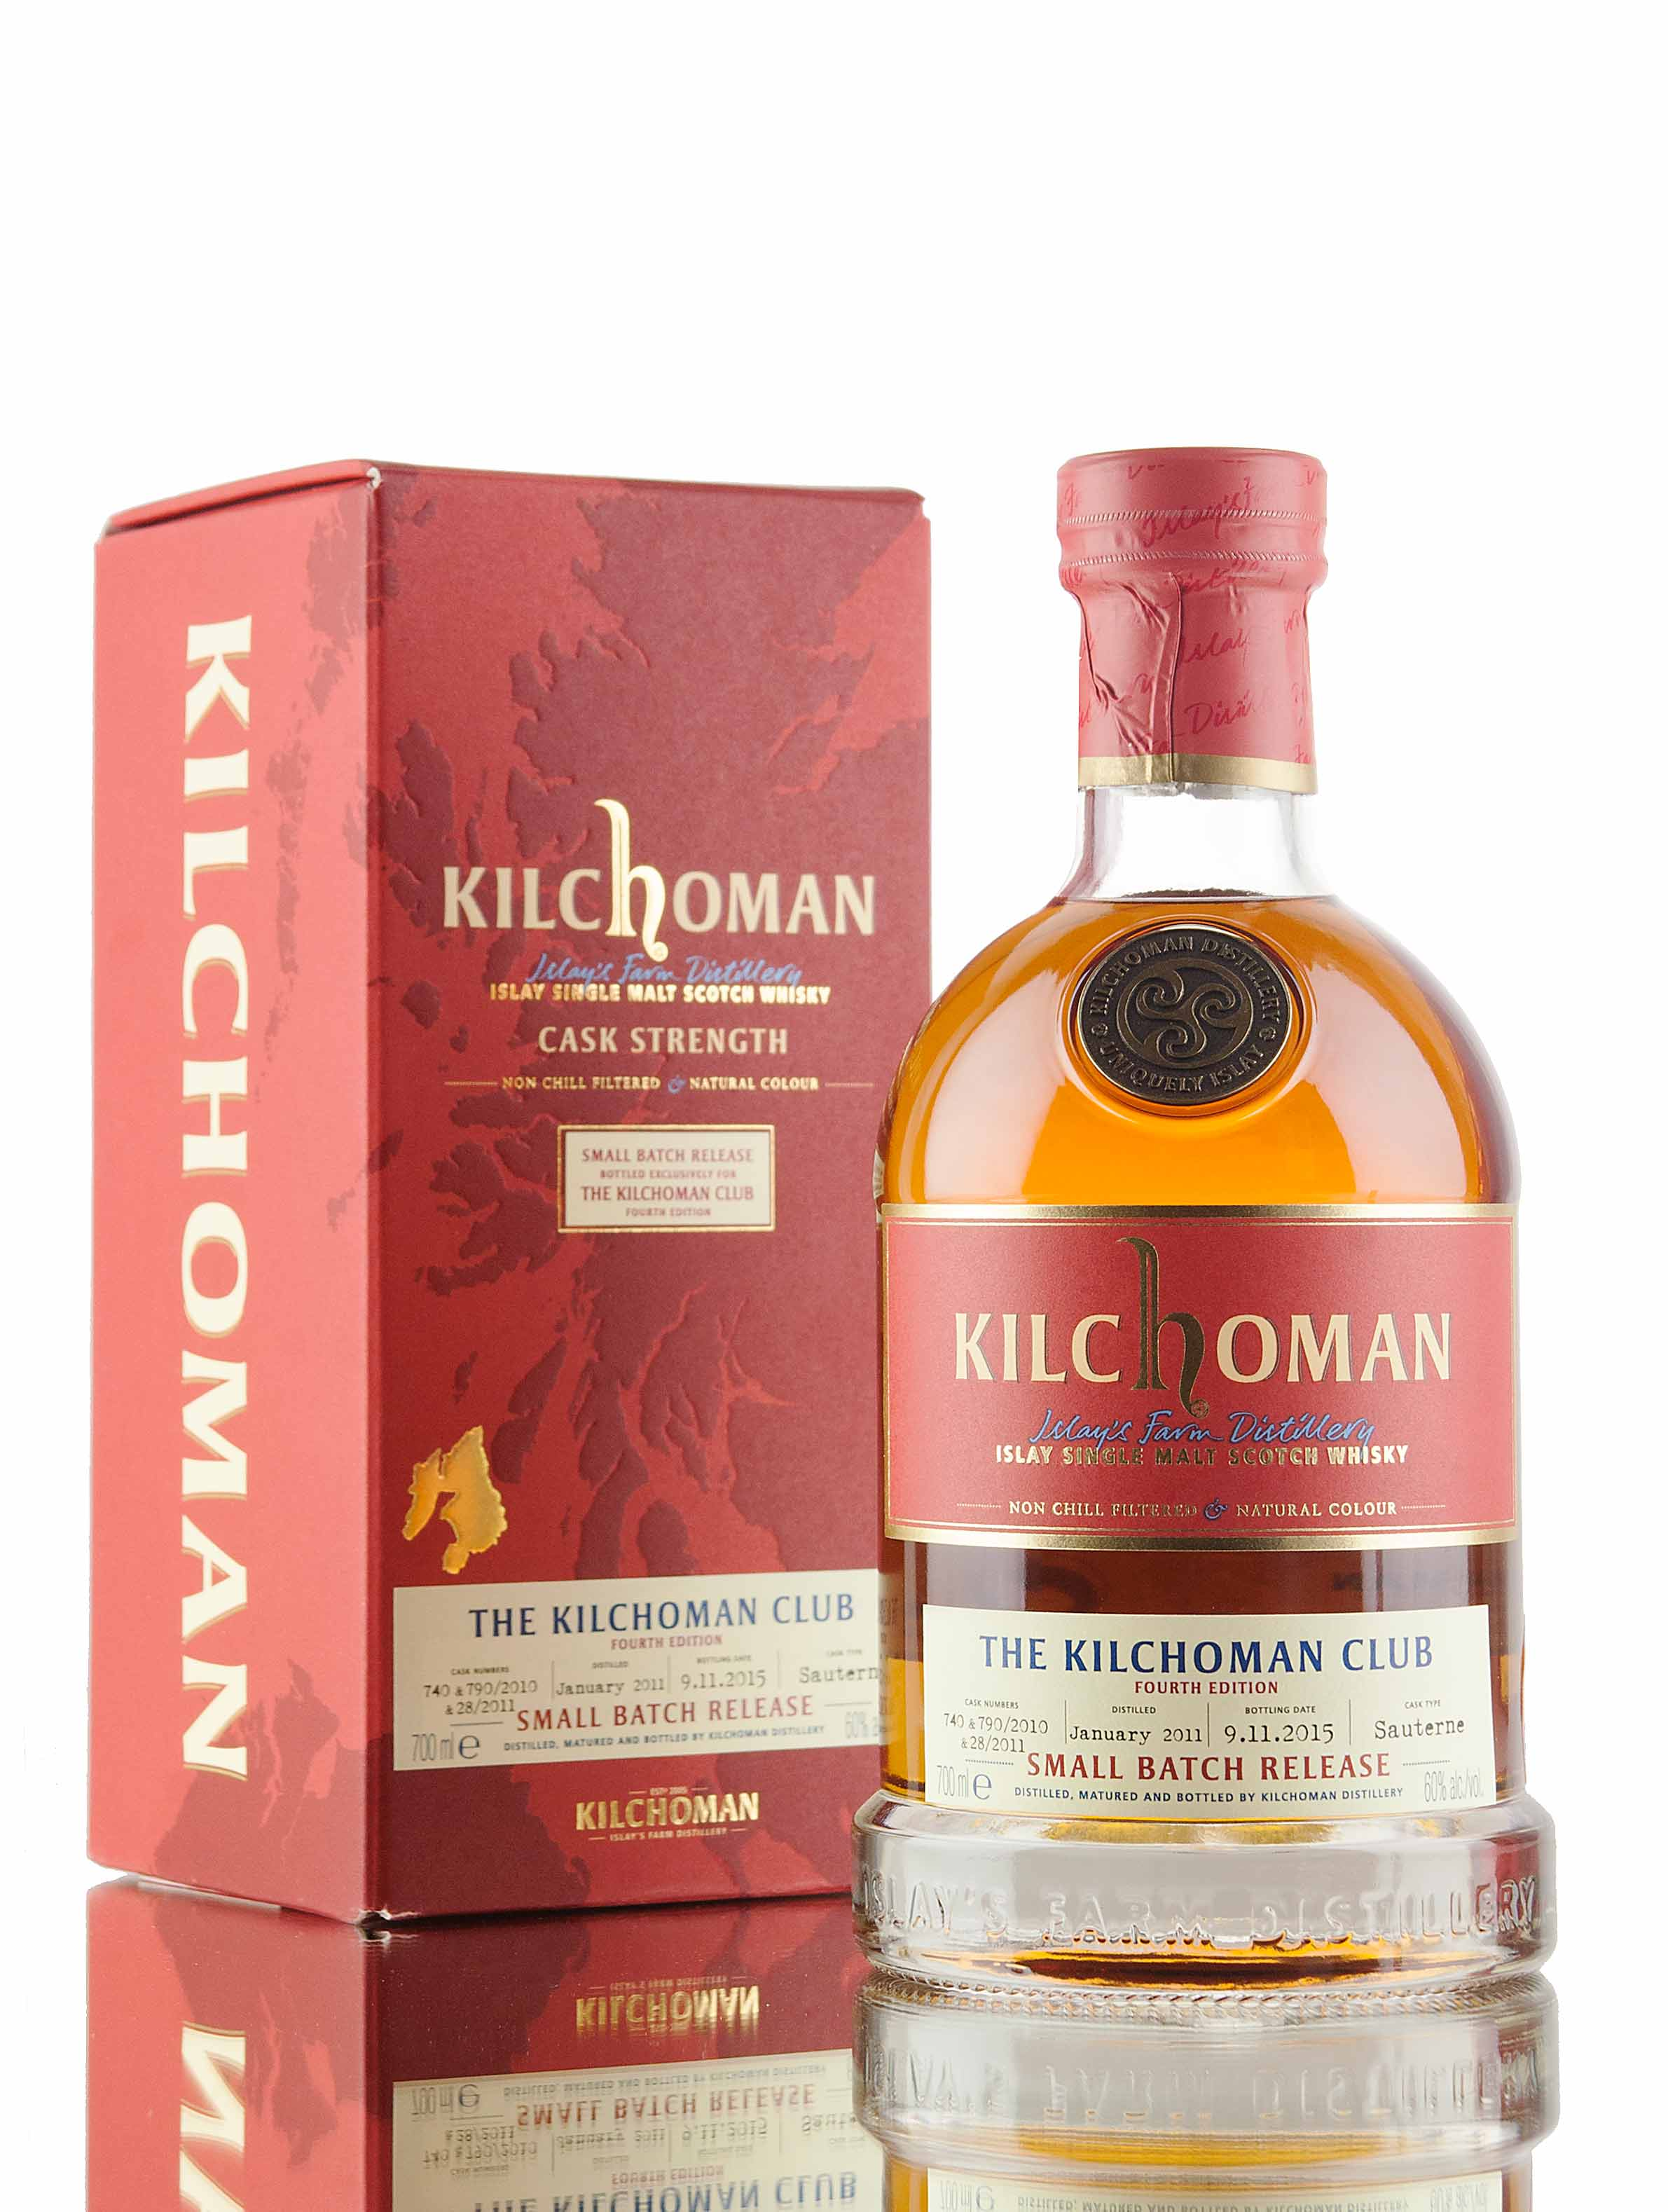 Kilchoman Club Fourth Edition / Sauterne Cask